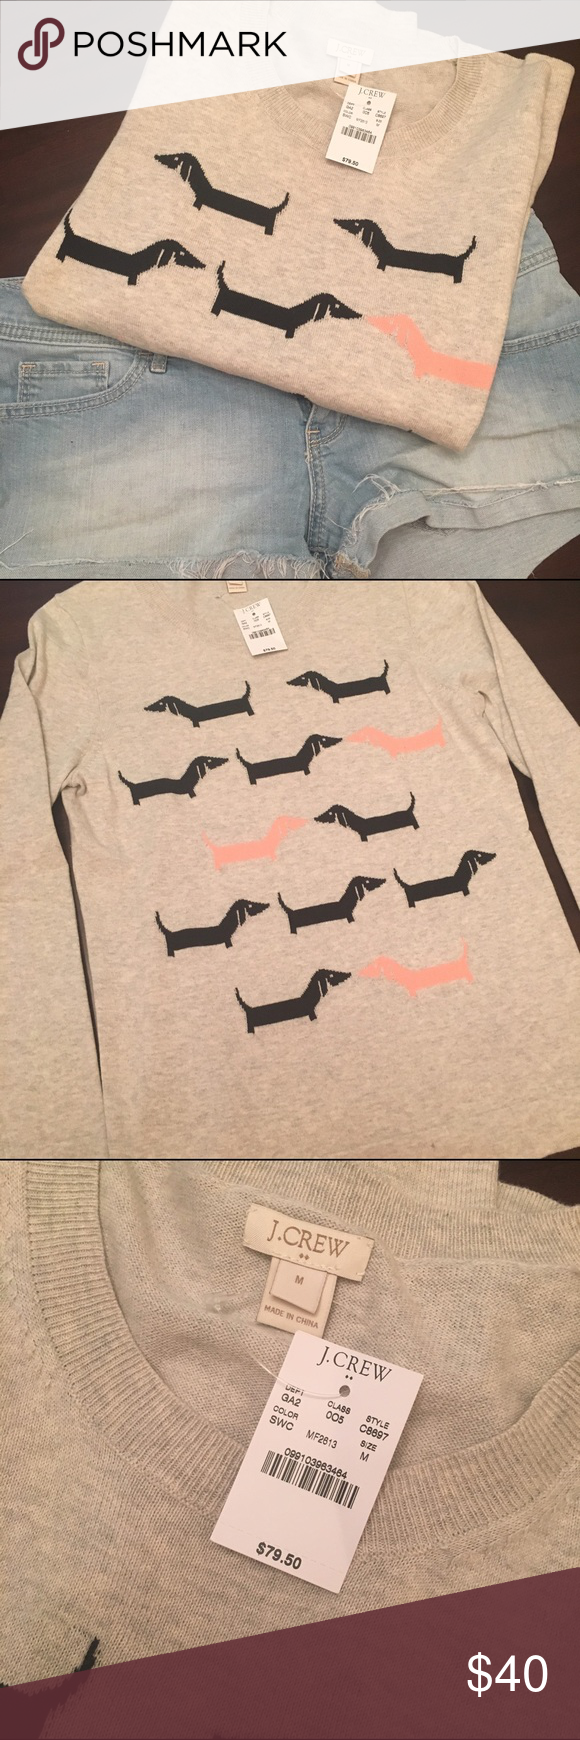 J. CREW dog sweater Grey sweater with black and pink dachshund dogs. New with tags J. Crew Sweaters